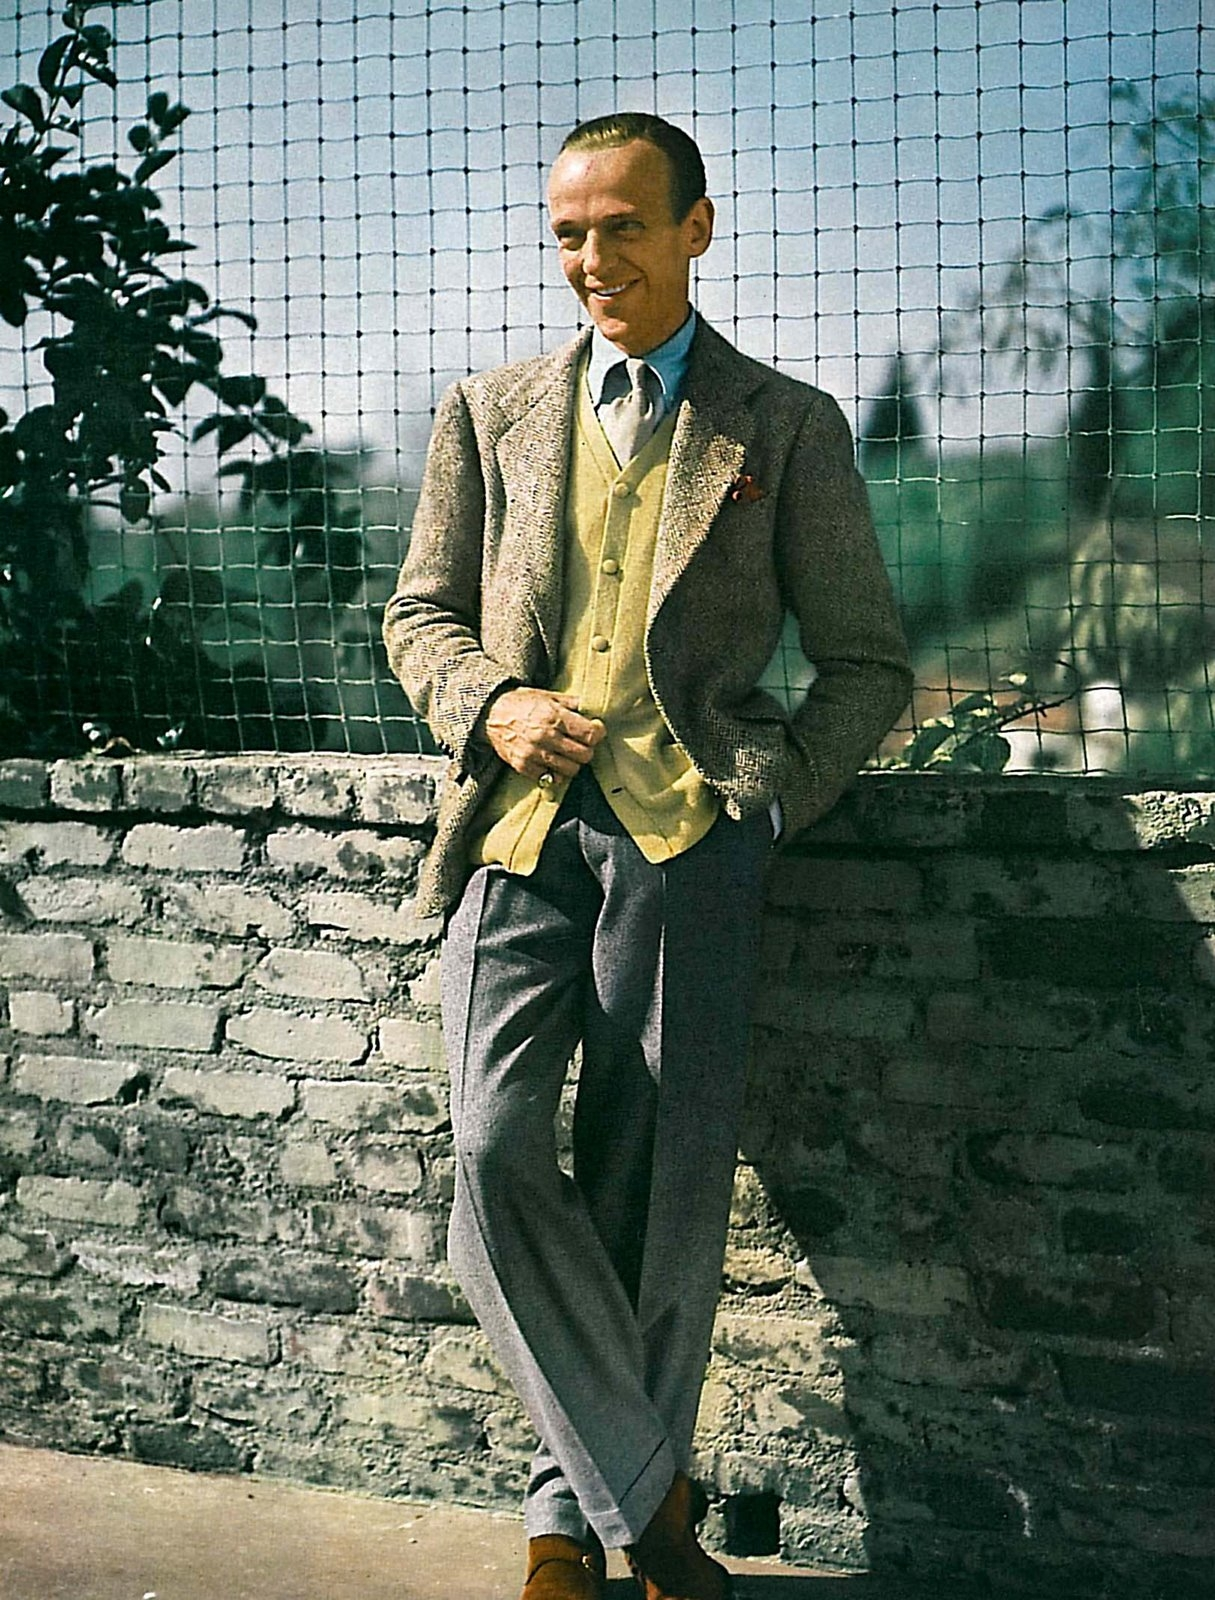 http://images5.fanpop.com/image/photos/30000000/Fred-Astaire-fred-astaire-30070203-1215-1600.jpg